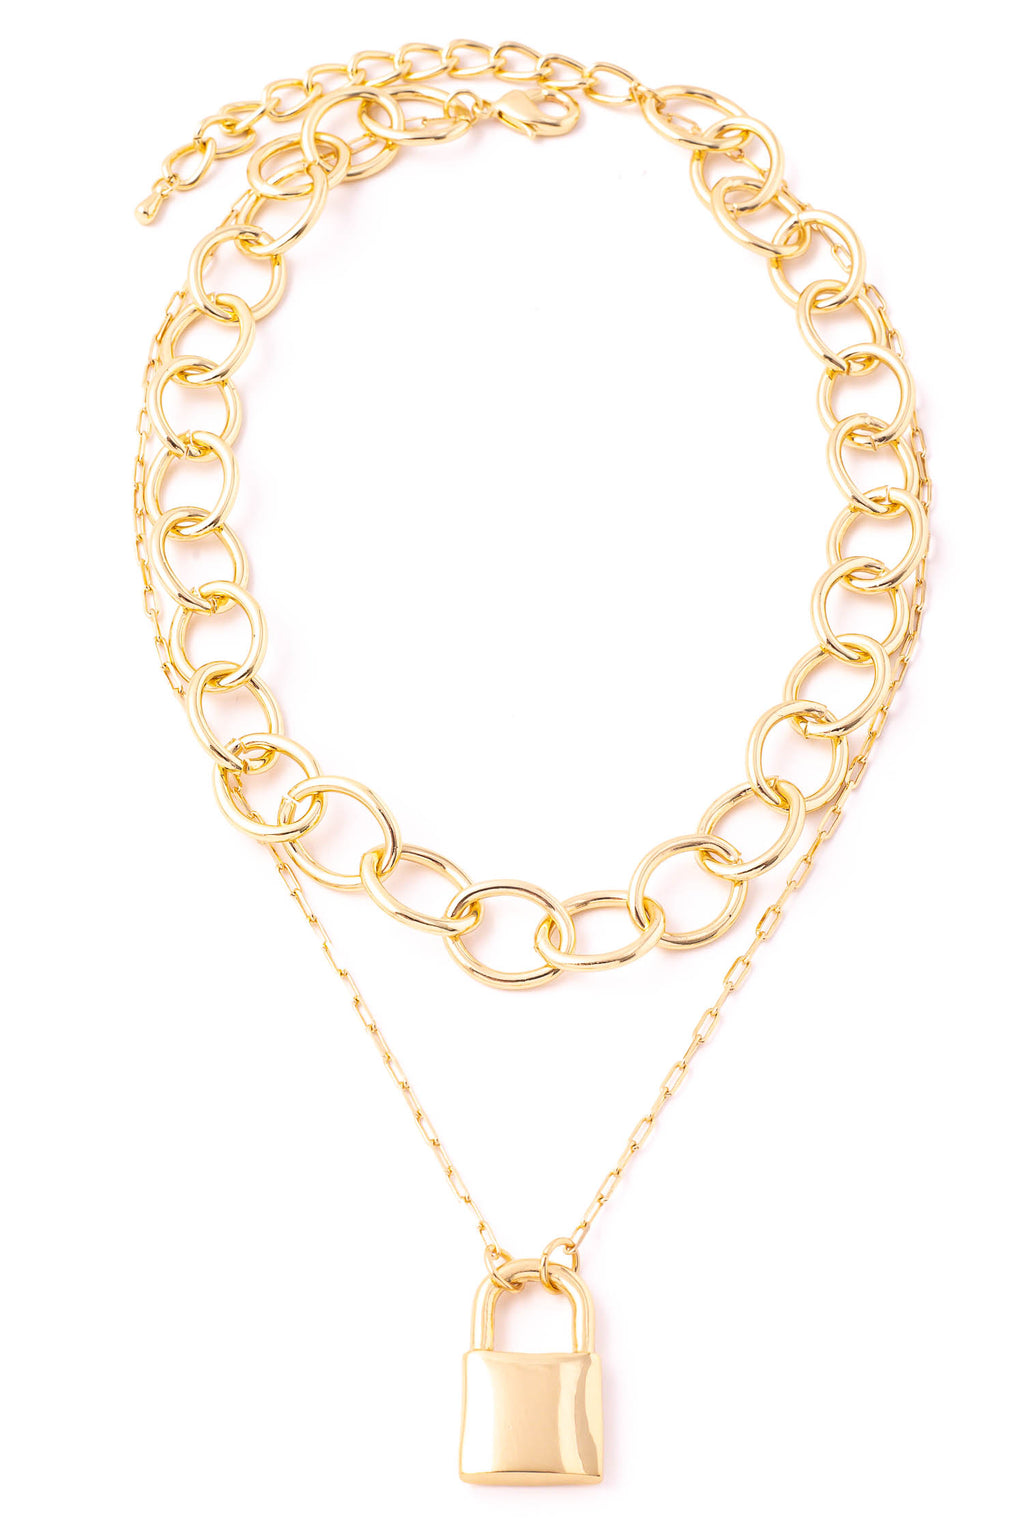 Gold Hoop Chain & Lock Charm Necklace